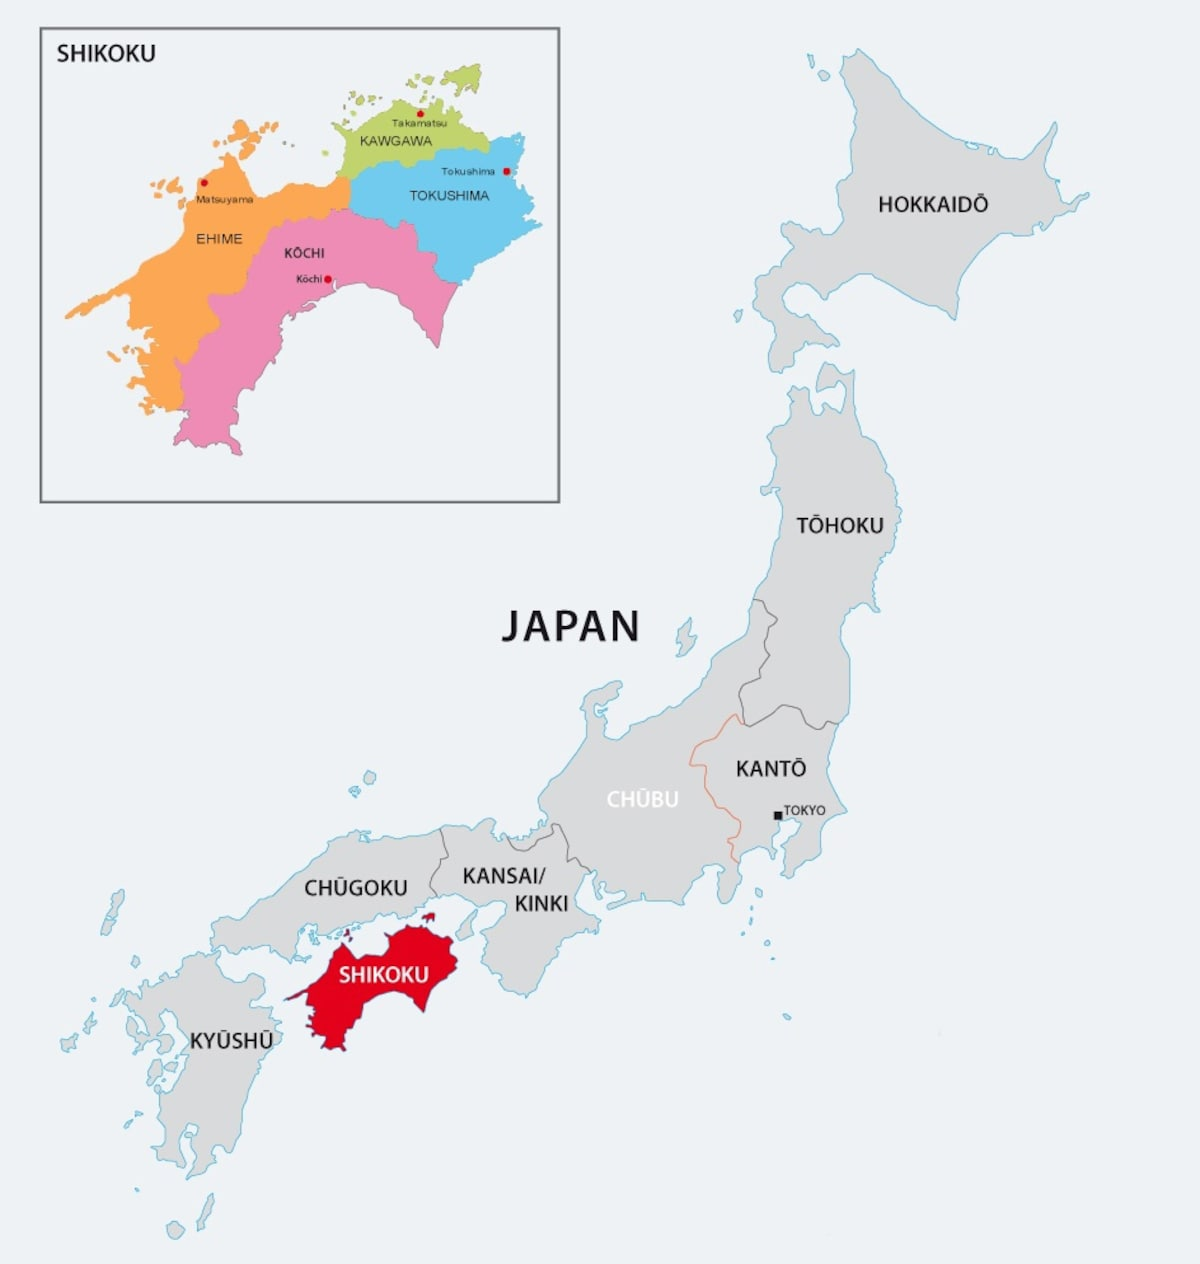 Where Is Shikoku?